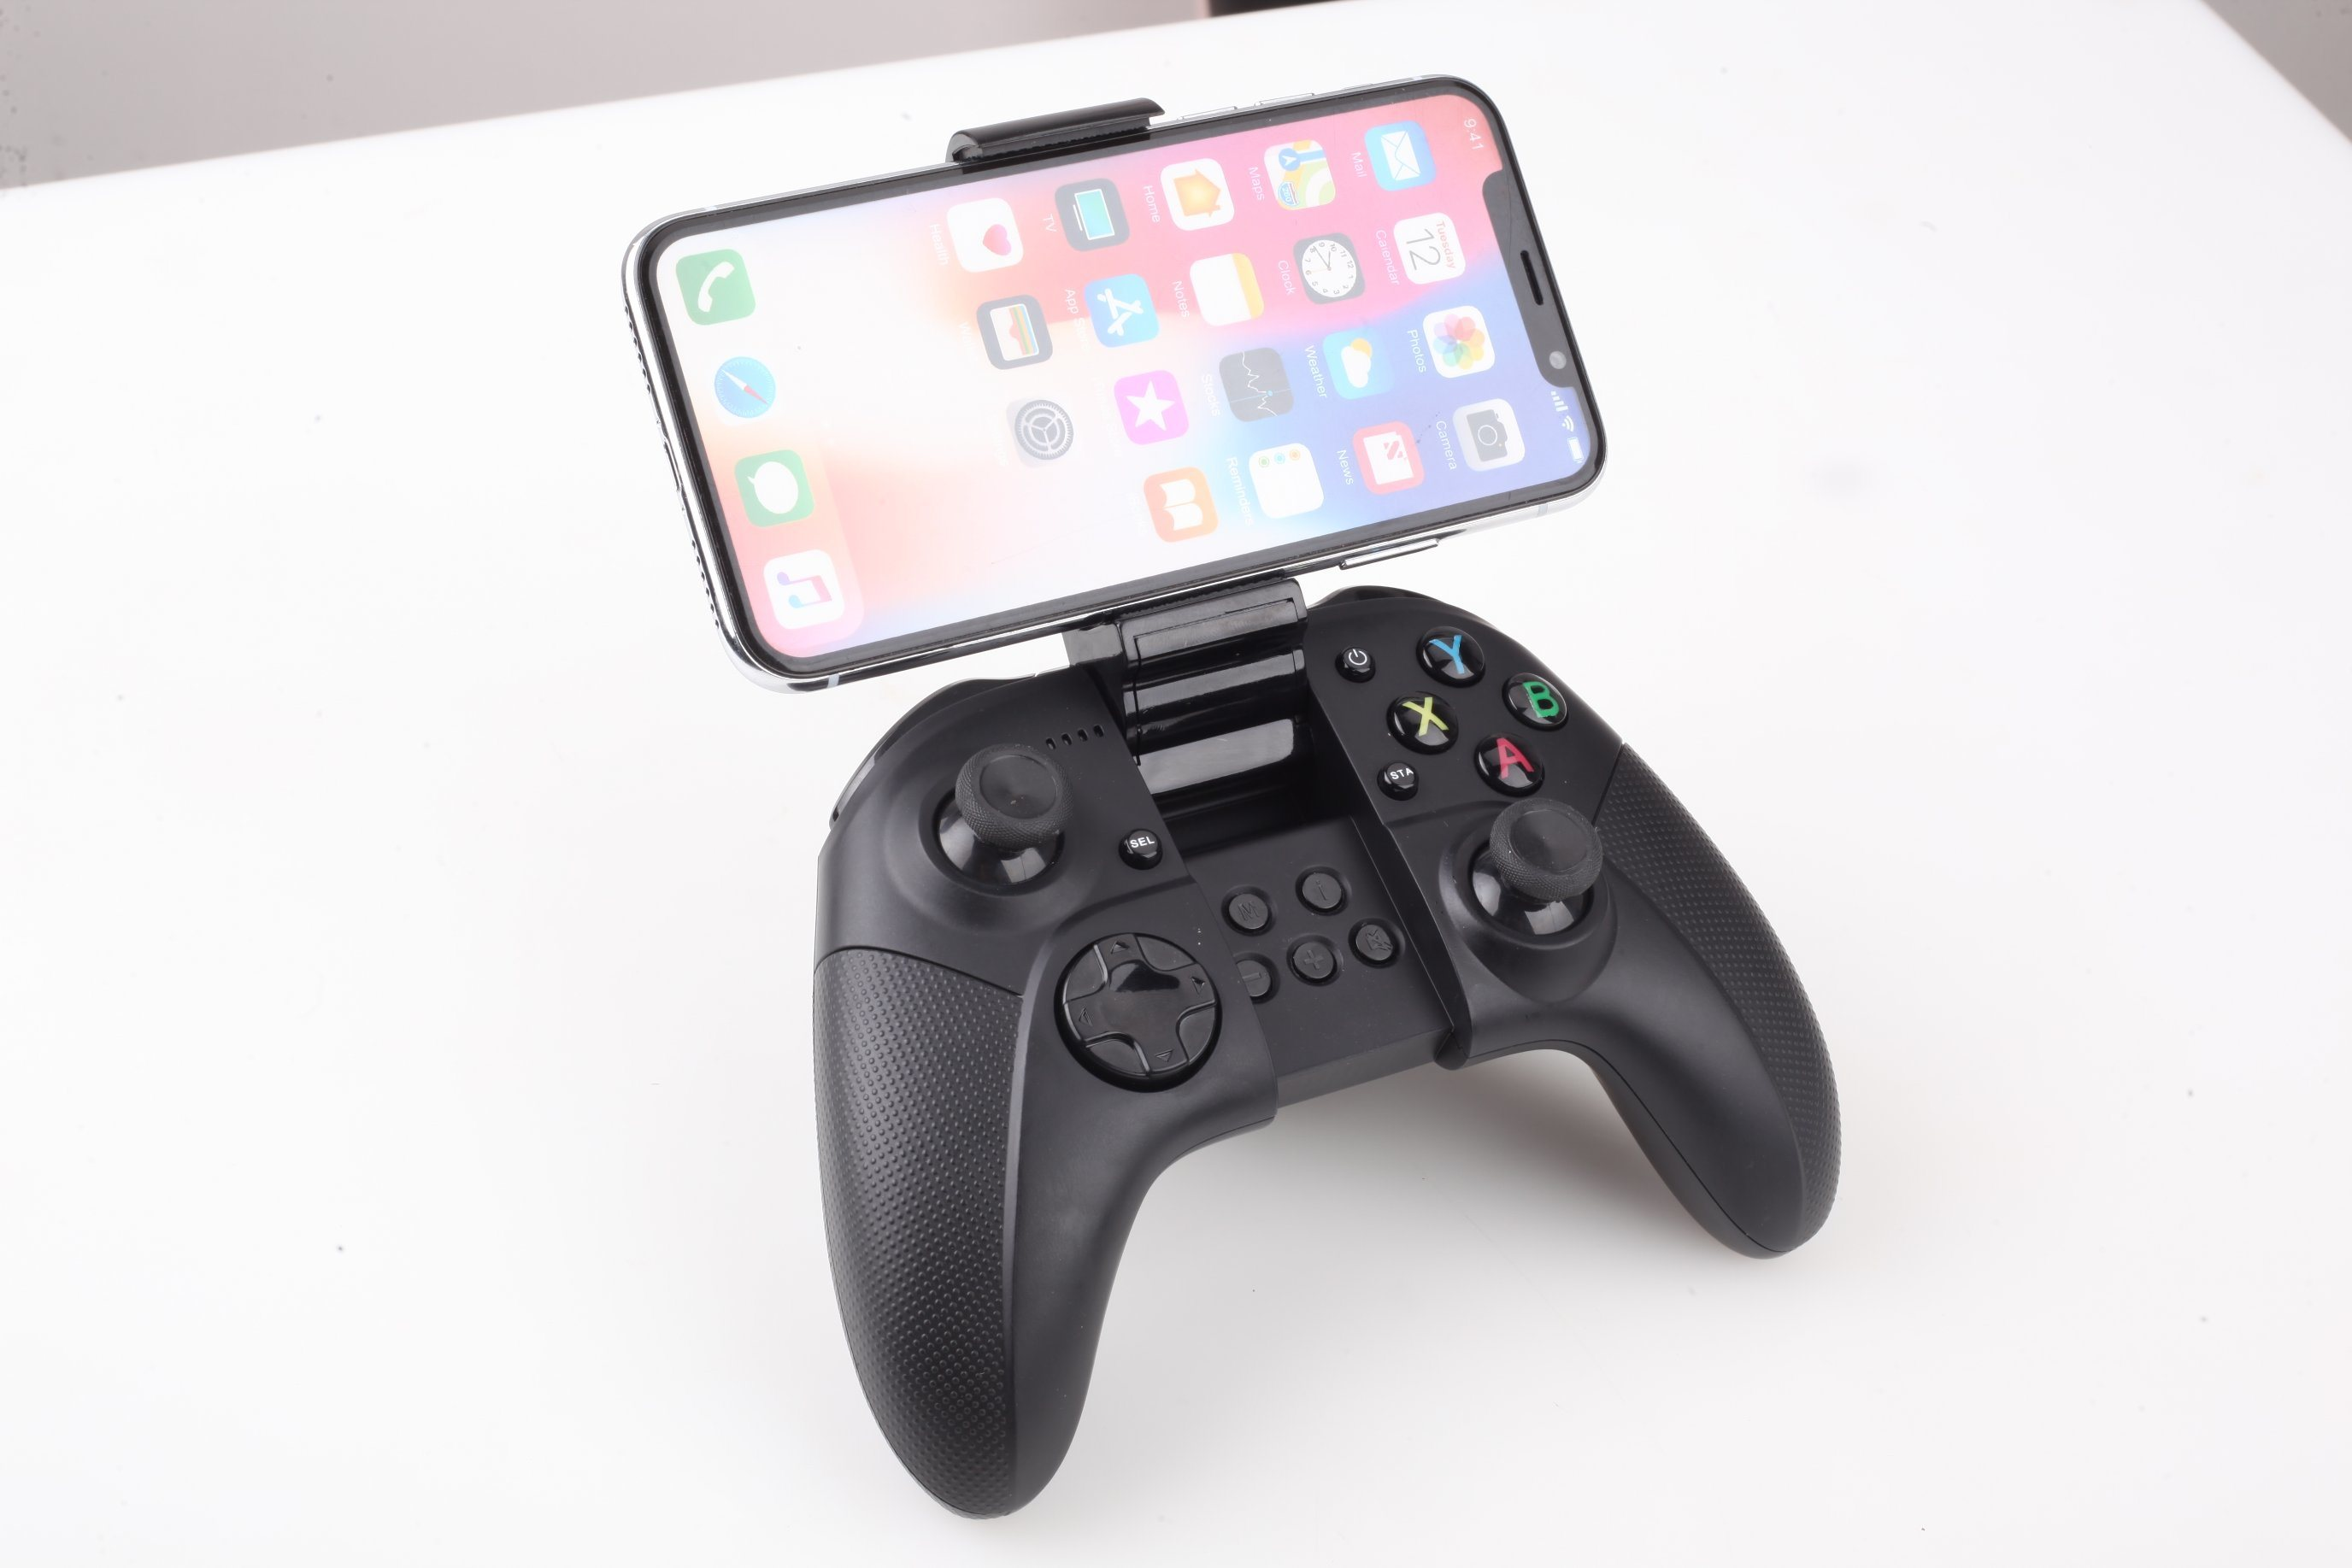 [Hot Item] W18 Wireless Gamepad Controller Bluetooth Speedy Joystick with  Clamp Holder for Ios/Android/iPad/iPhone/iPod